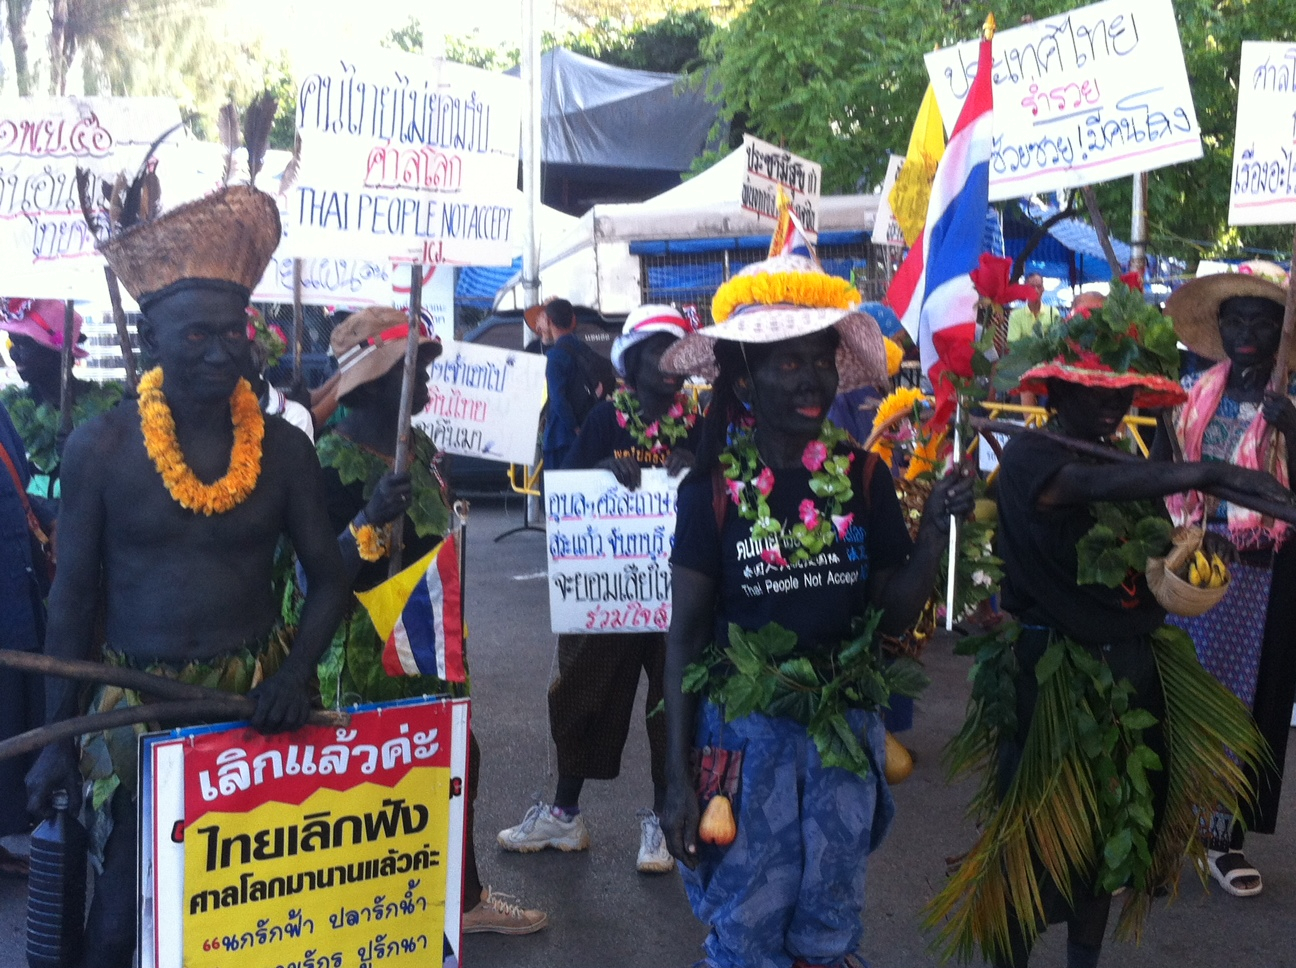 Animal Crossing Marshal Porn กลียุค — thailand's era of insanity | andrew macgregor marshall